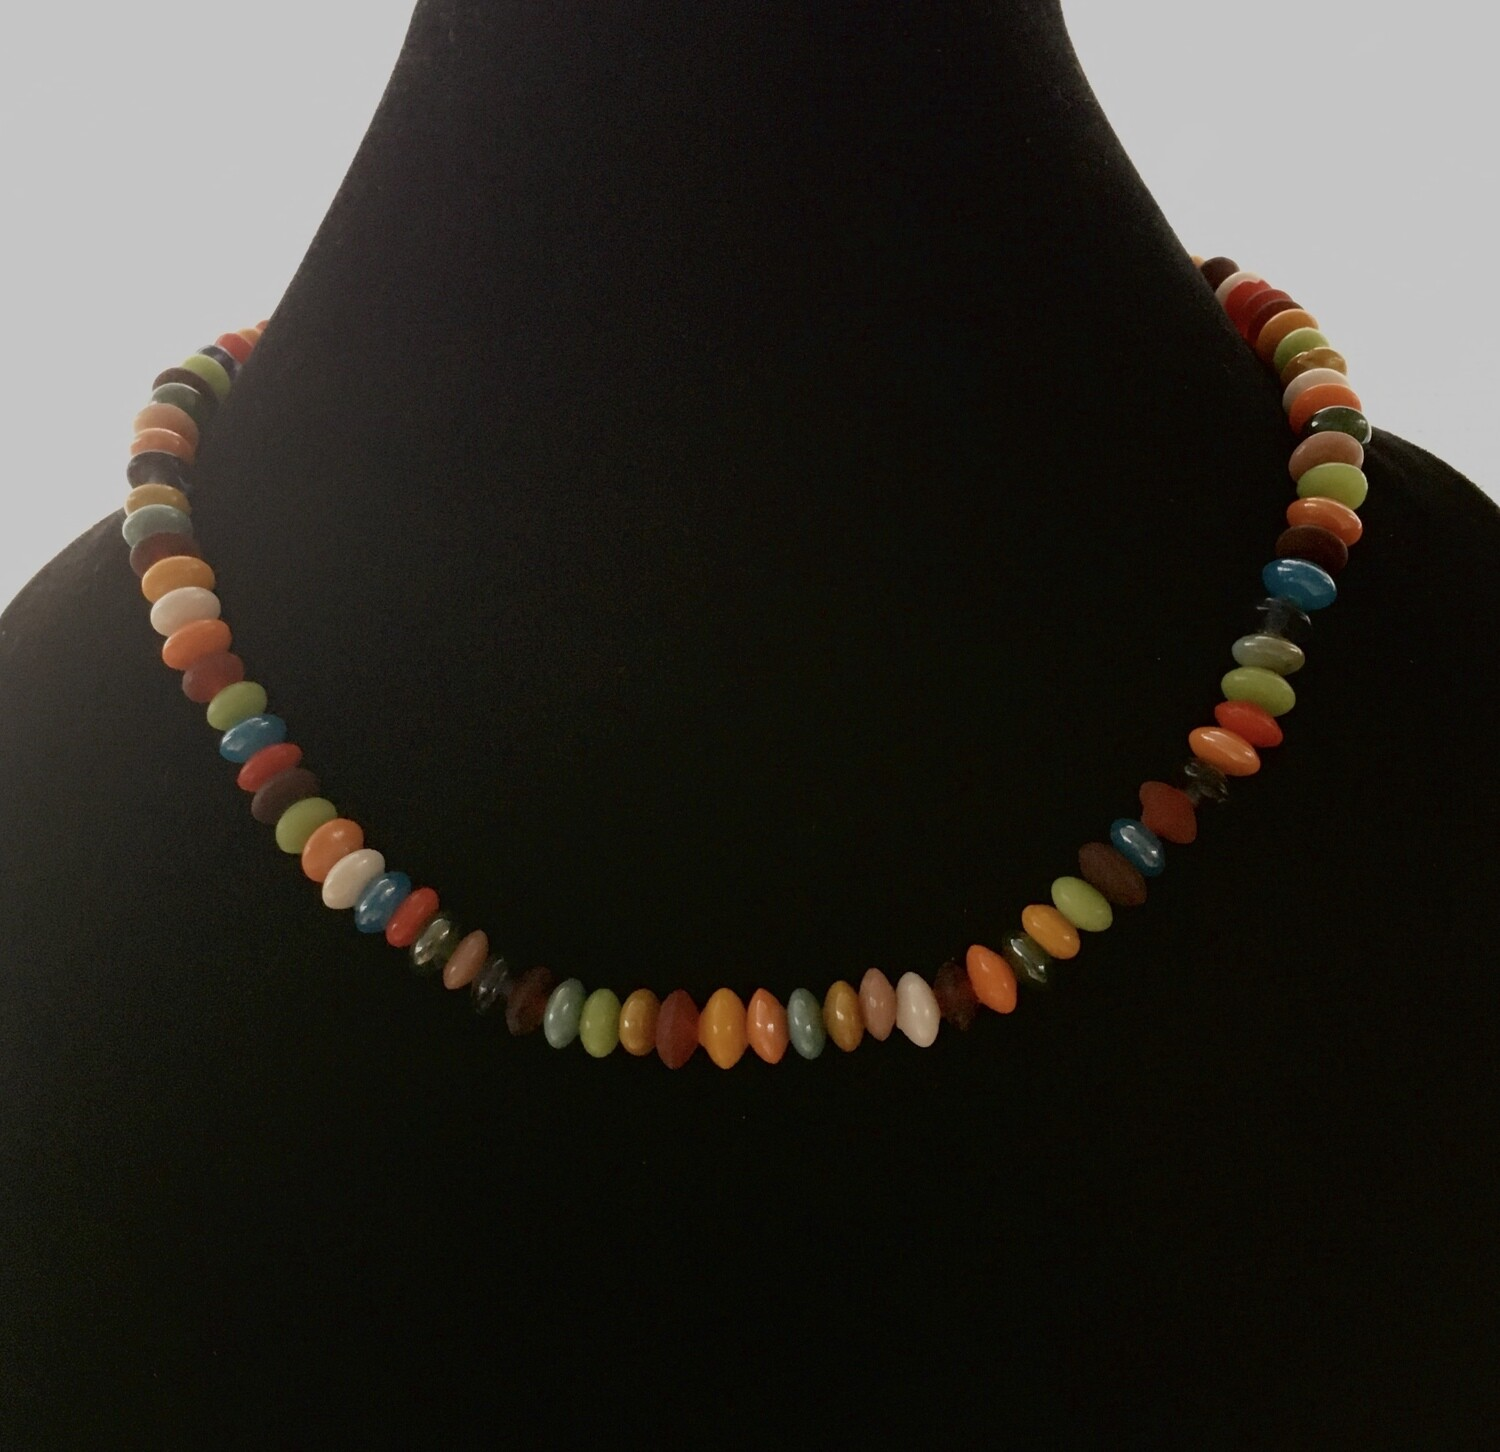 Candy coloured beads necklace